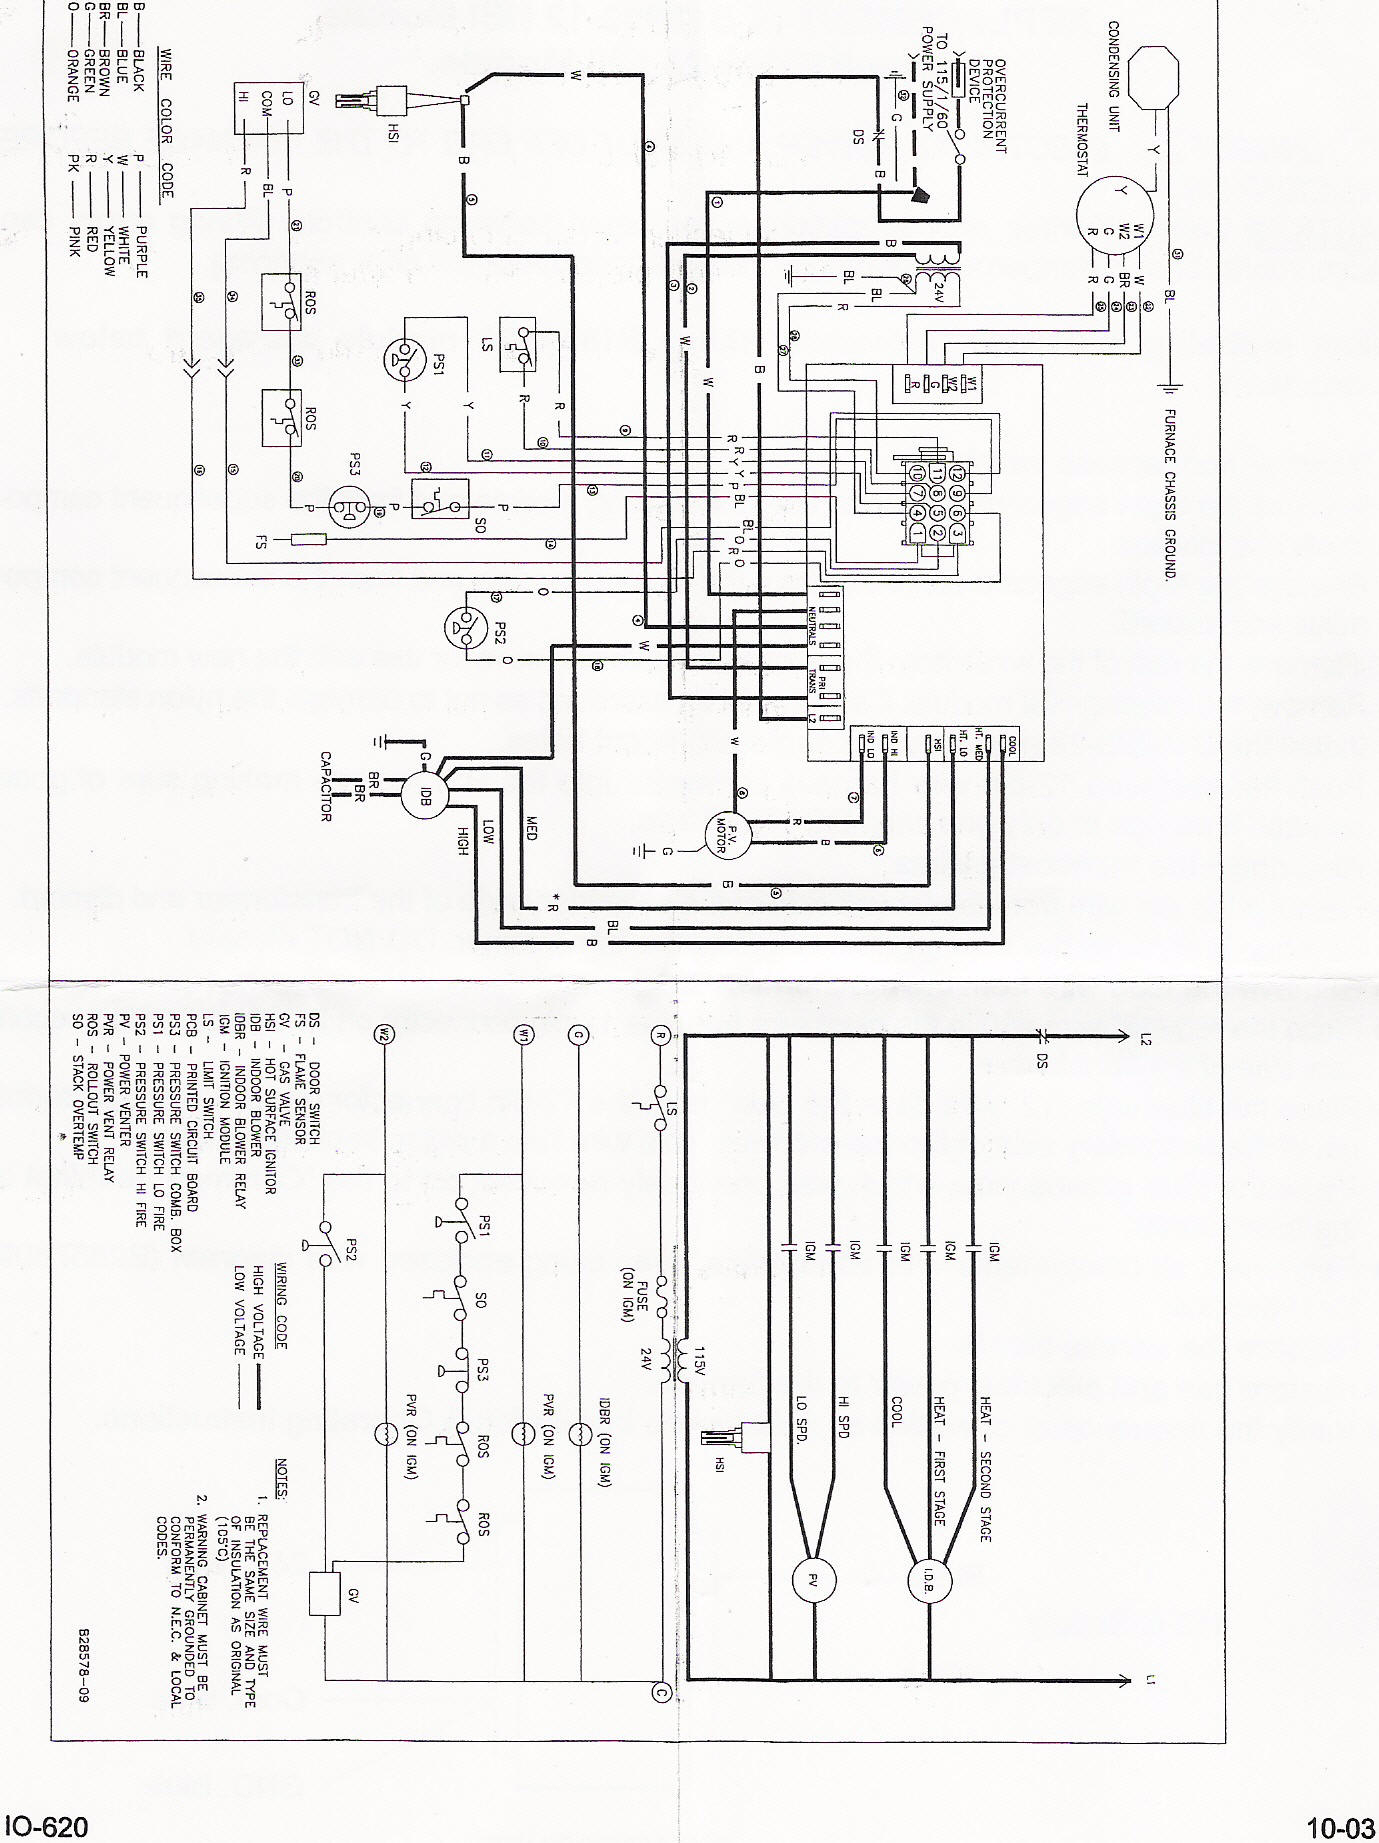 York Air Handler Control Board Wiring Diagram | Wiring Diagram - York Air Handler Wiring Diagram